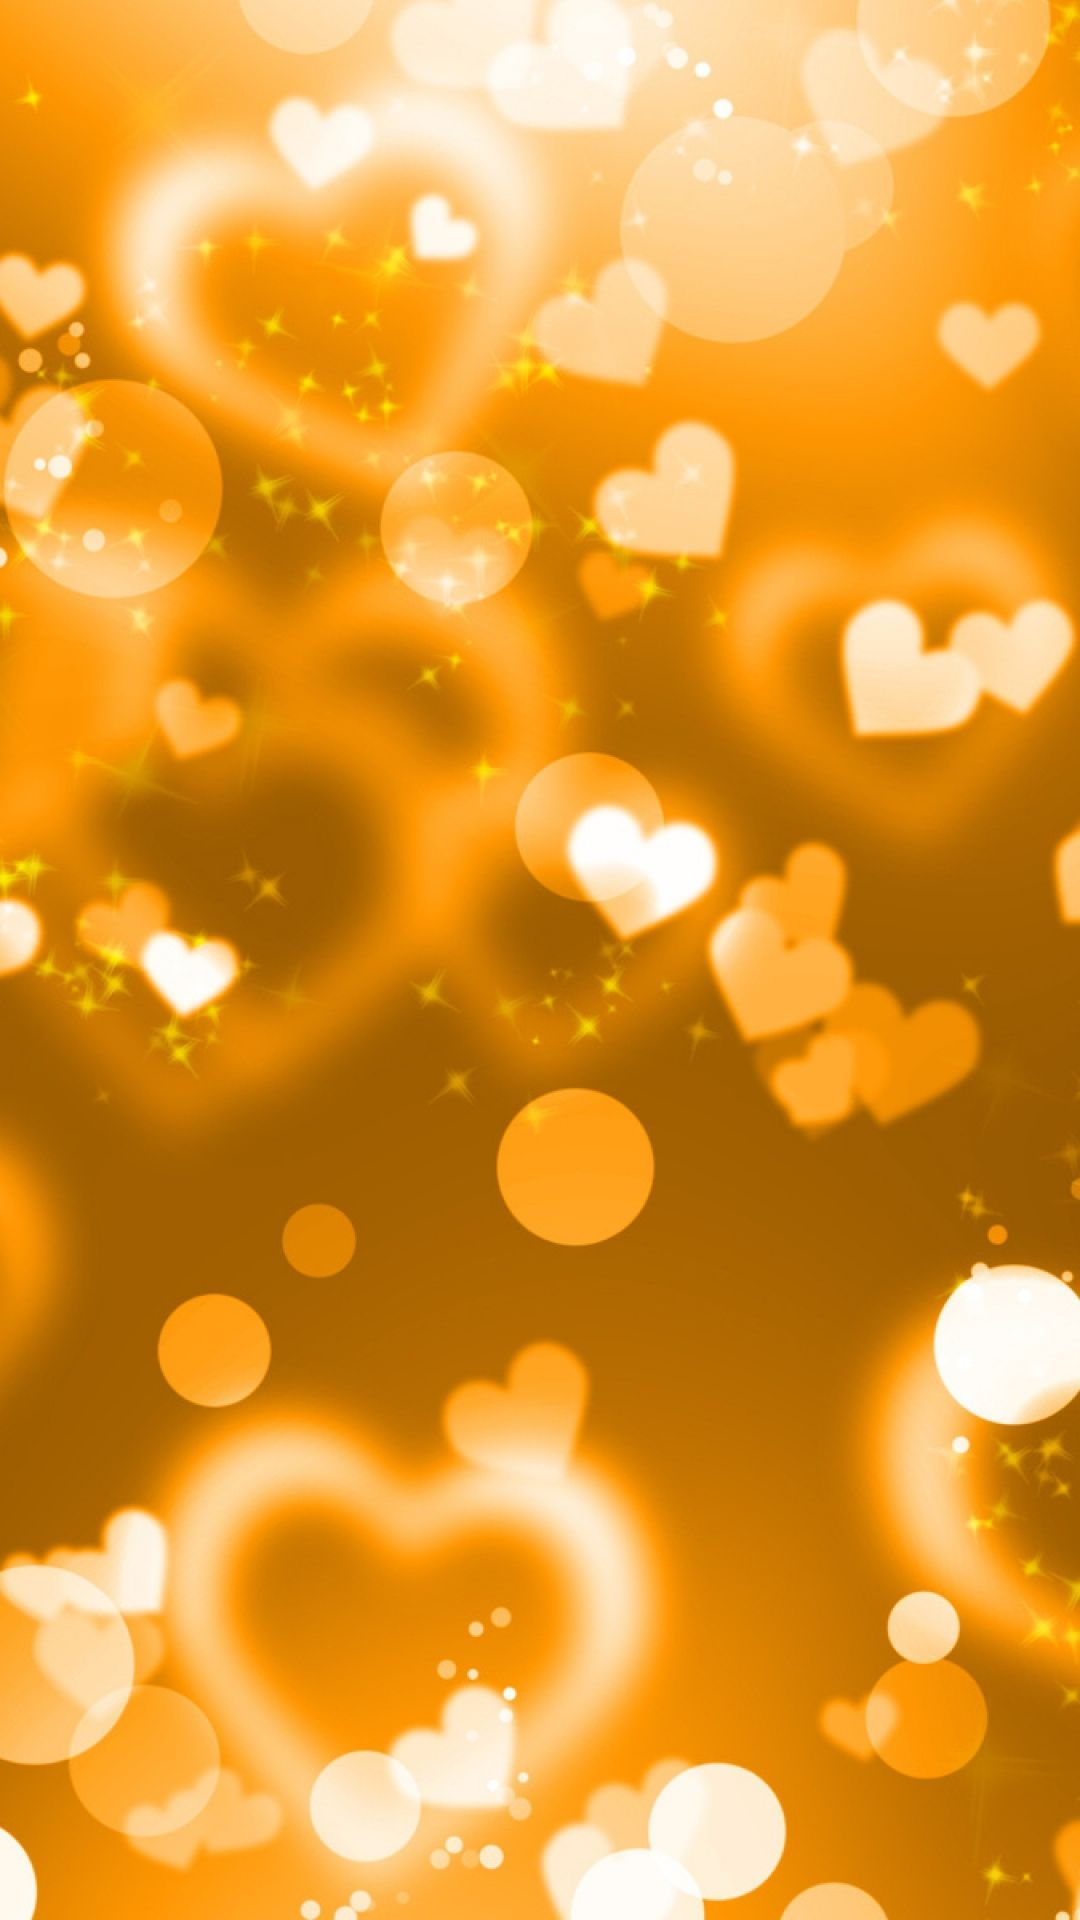 Gold Heart Girly Iphone Wallpapers In 2019 Iphone